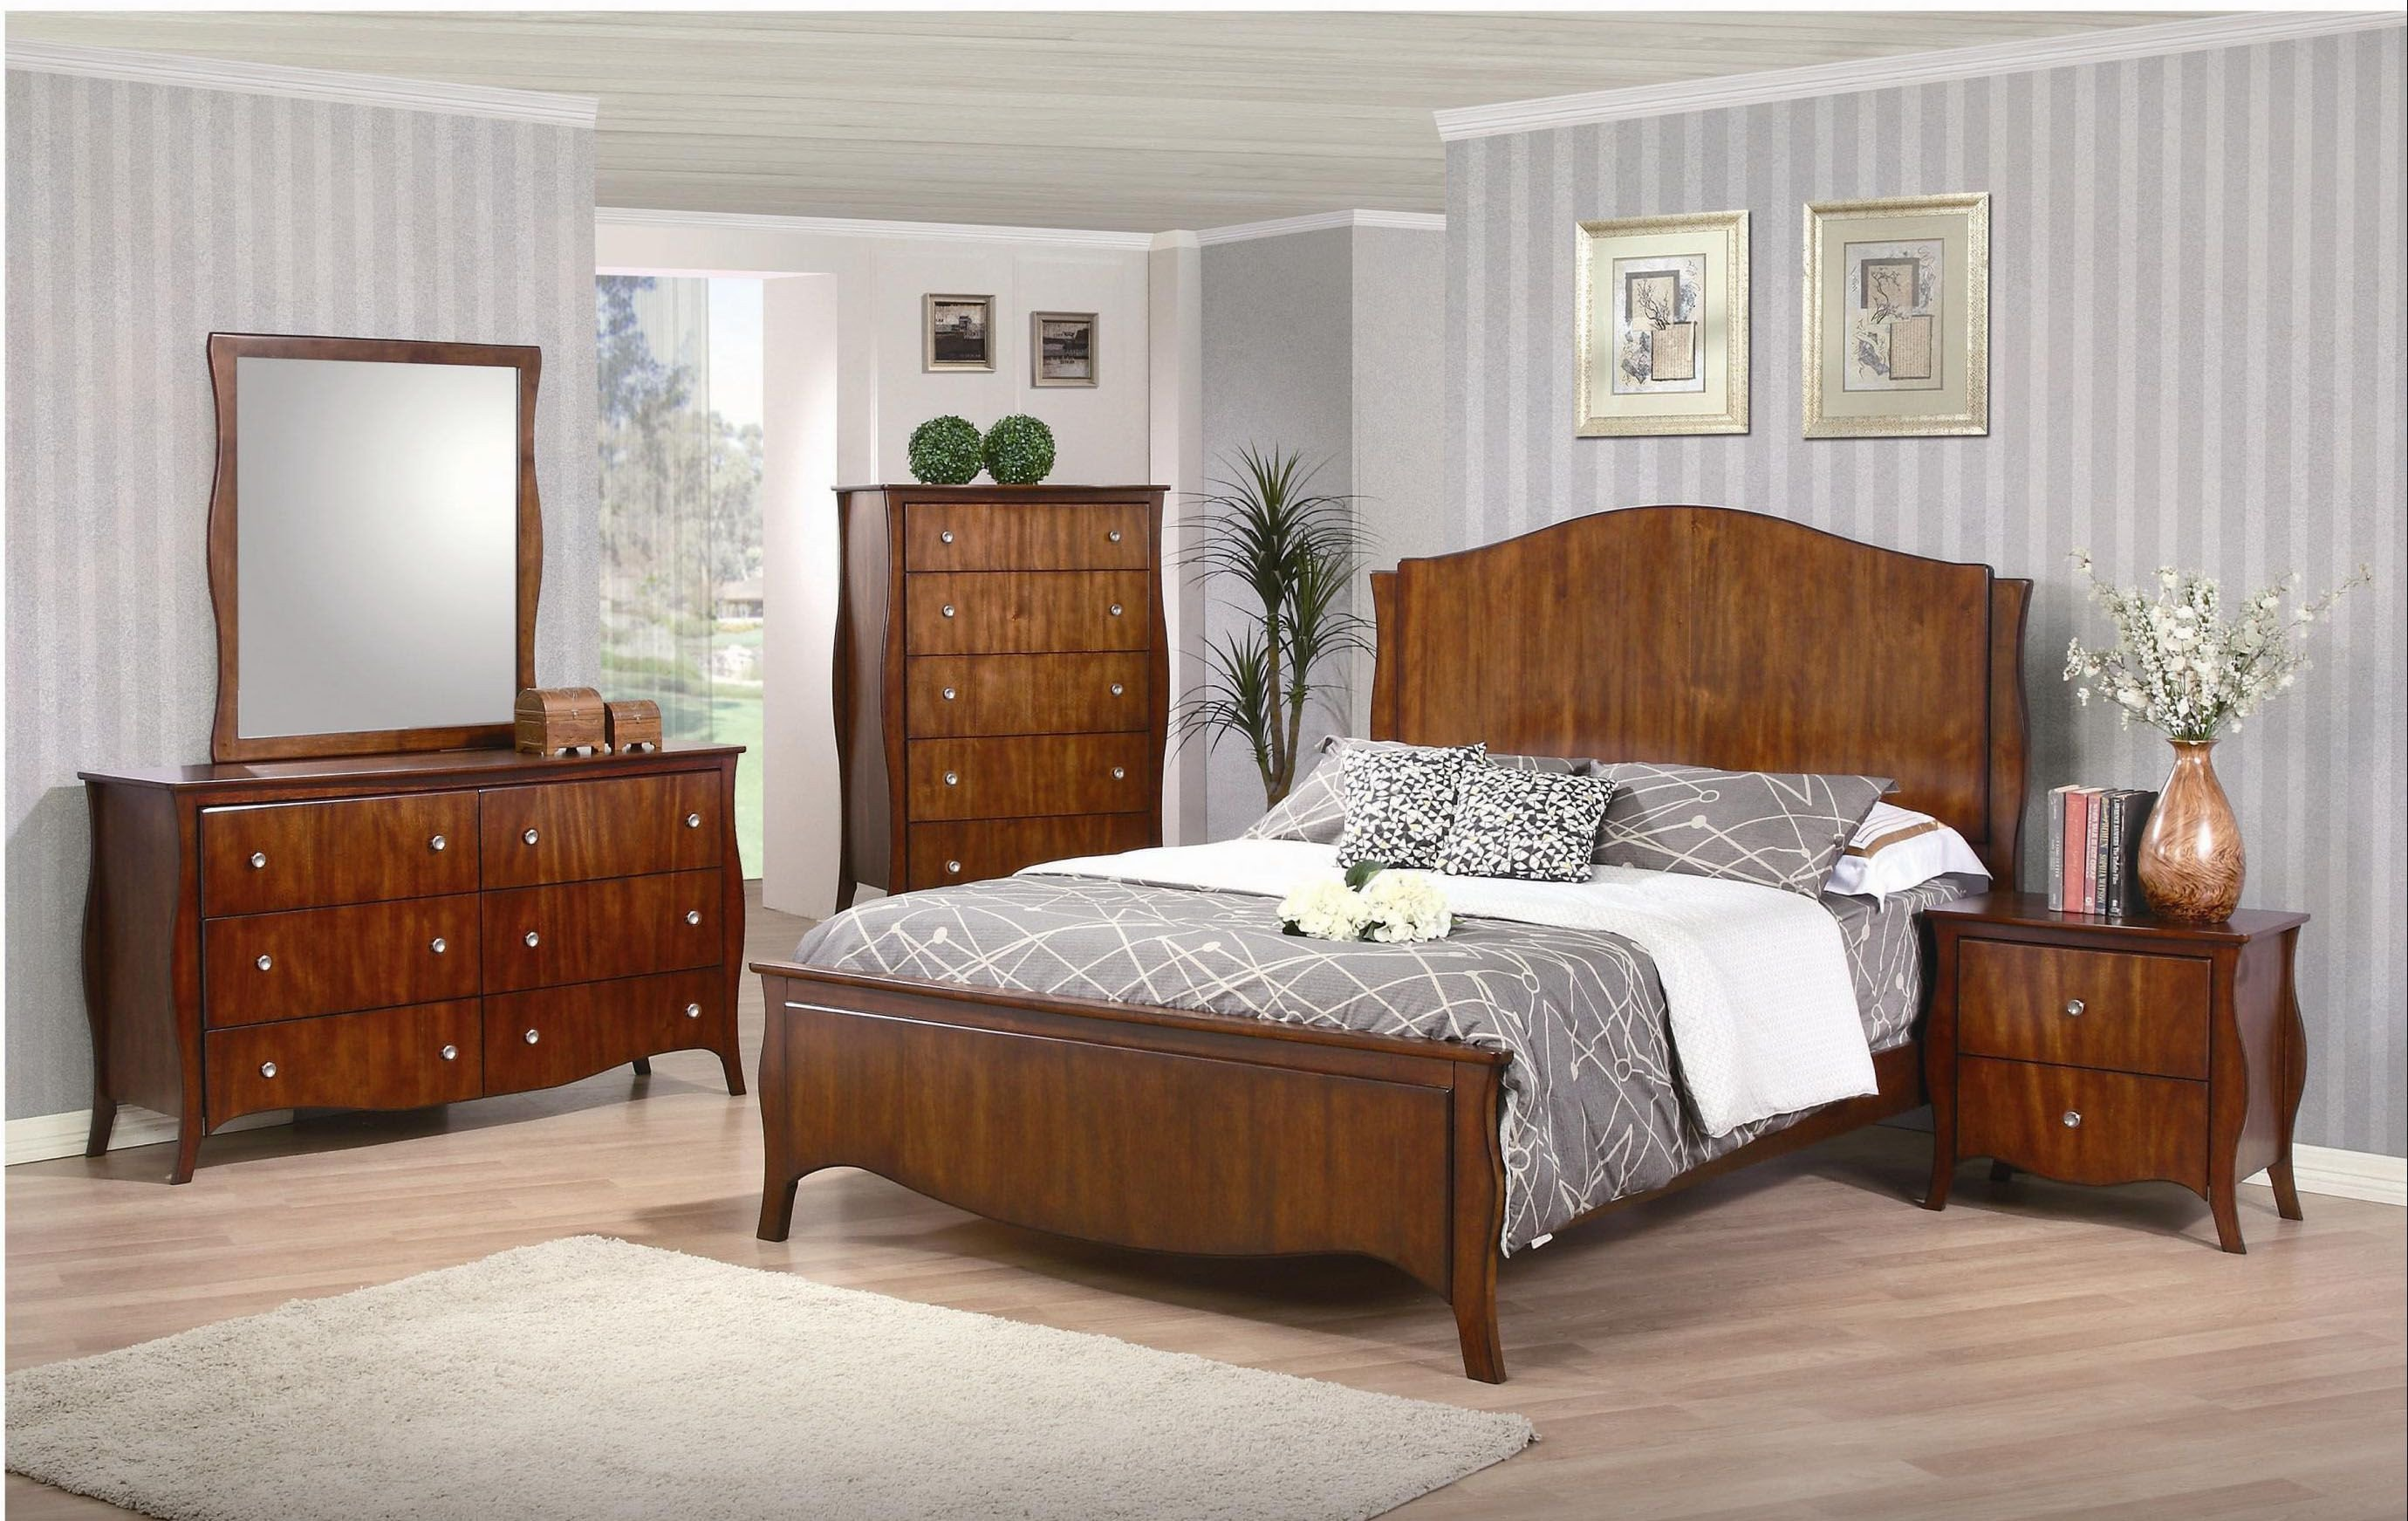 Broyhill King Bedroom Set Best Of Ontario Bedroom Set This Set Will Brightens Your Bedroom